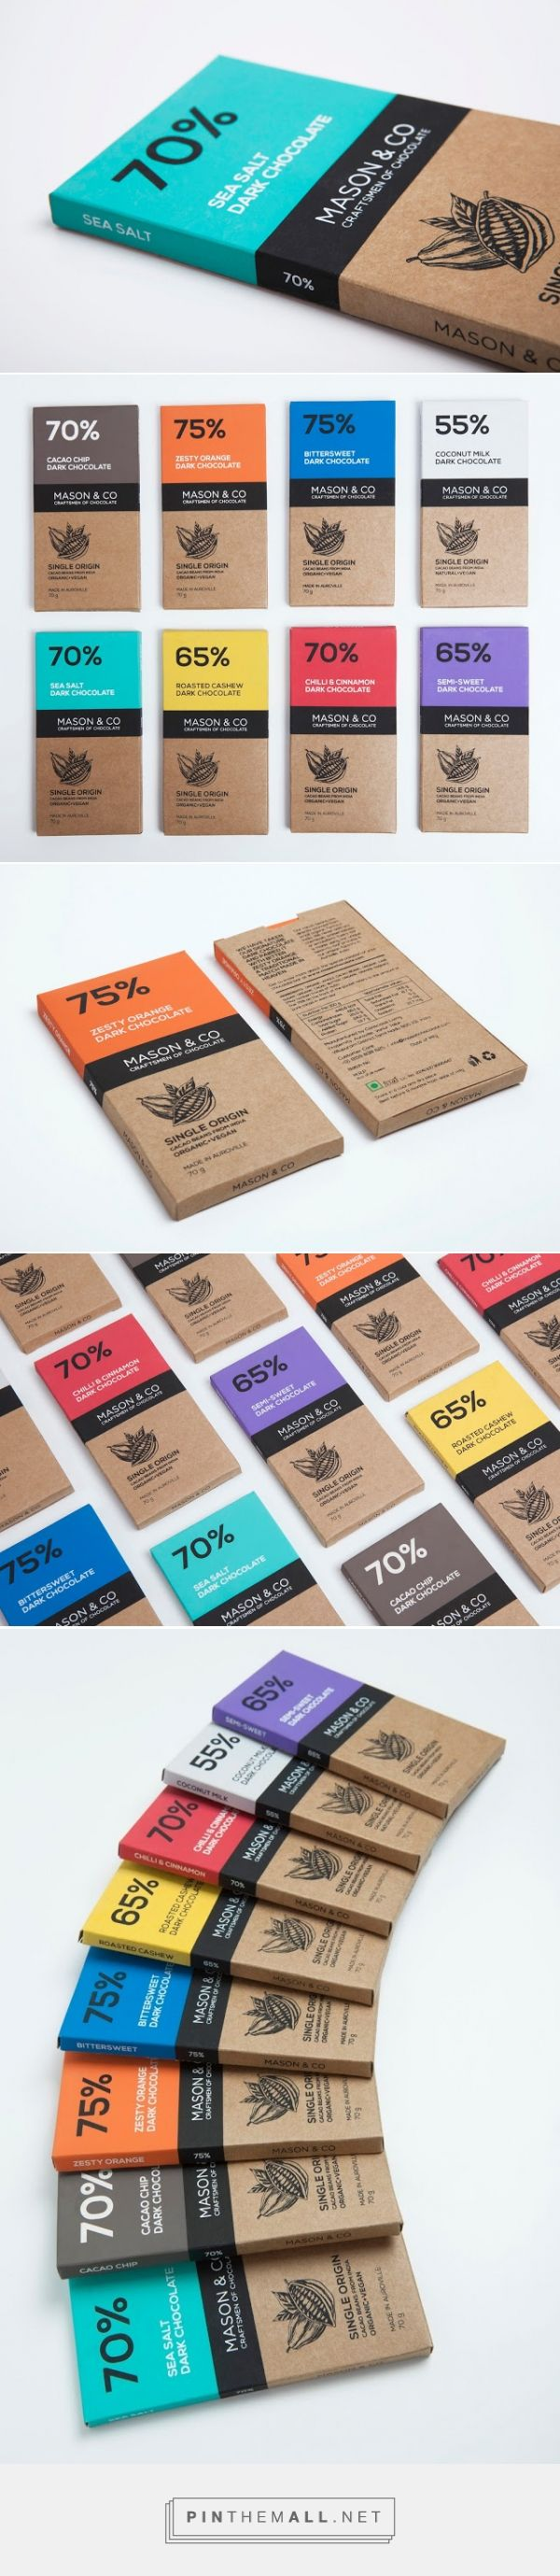 Mason & Co Chocolate Bars - The Dark Chocolate Collection on Packaging of…